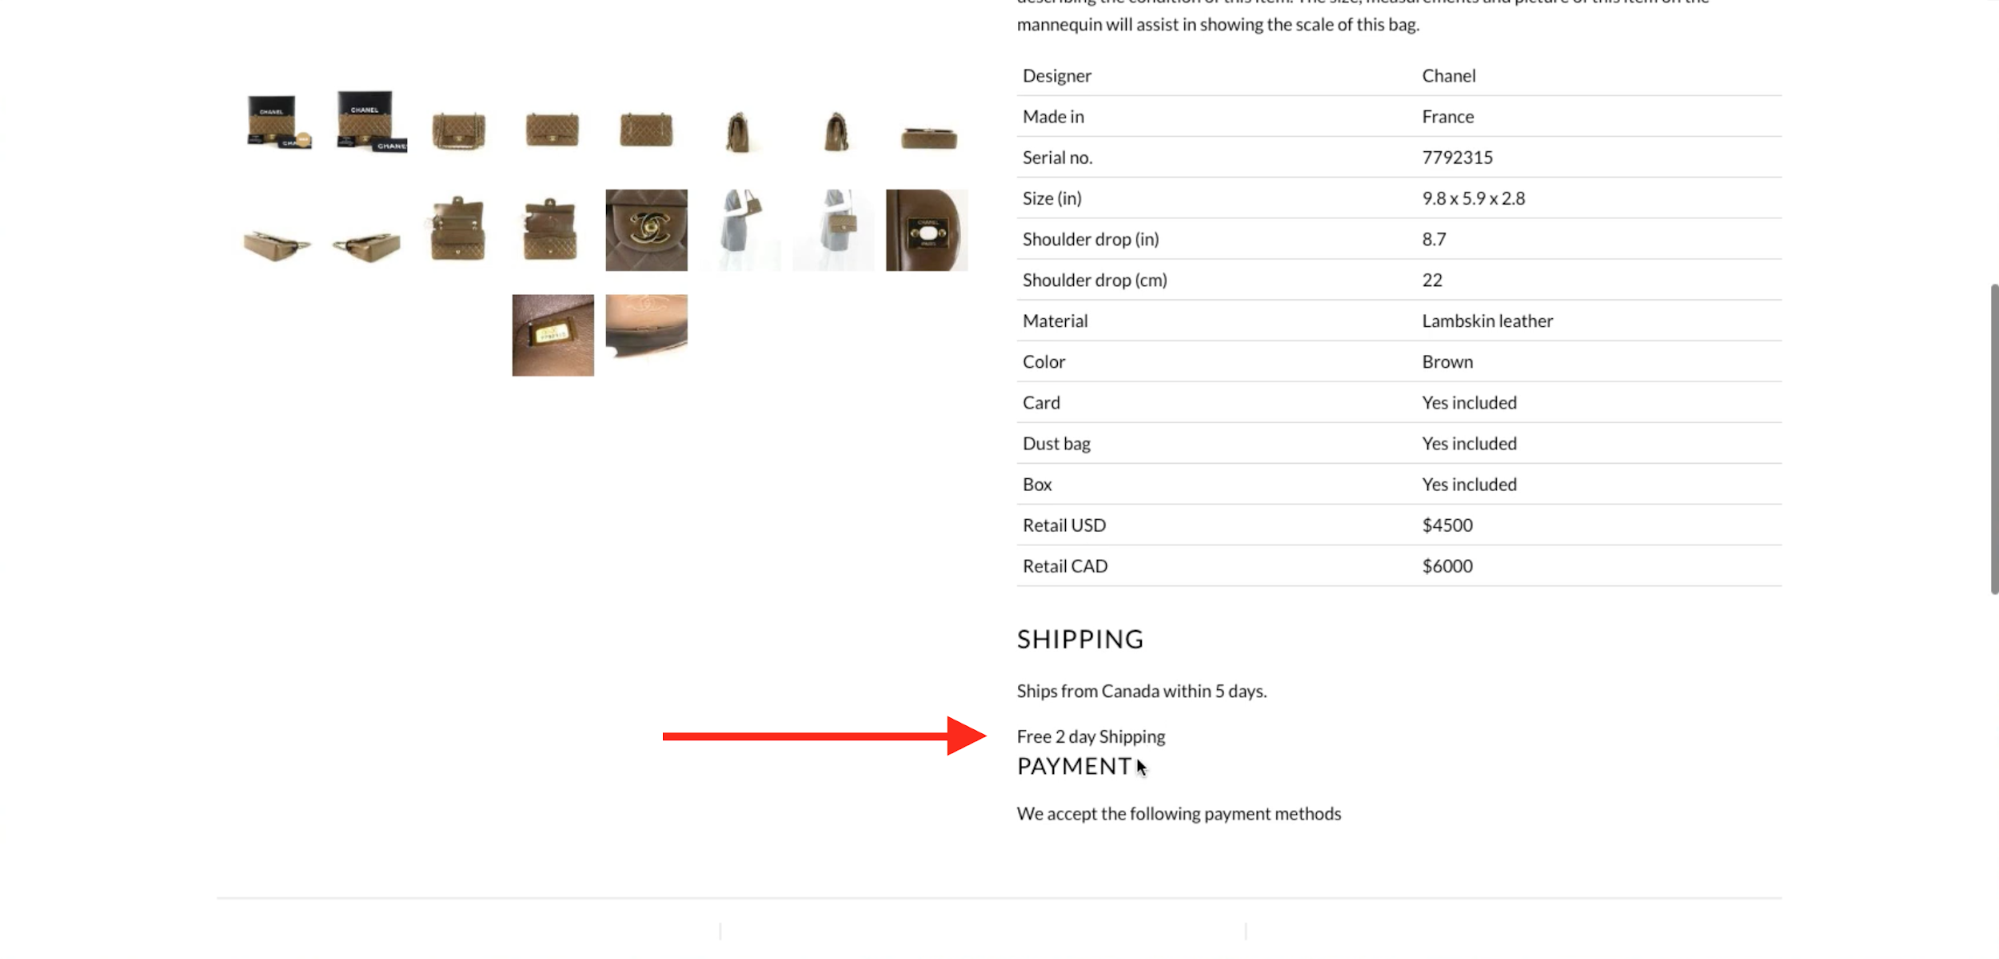 Shopify merchant is checking page to see if the code works